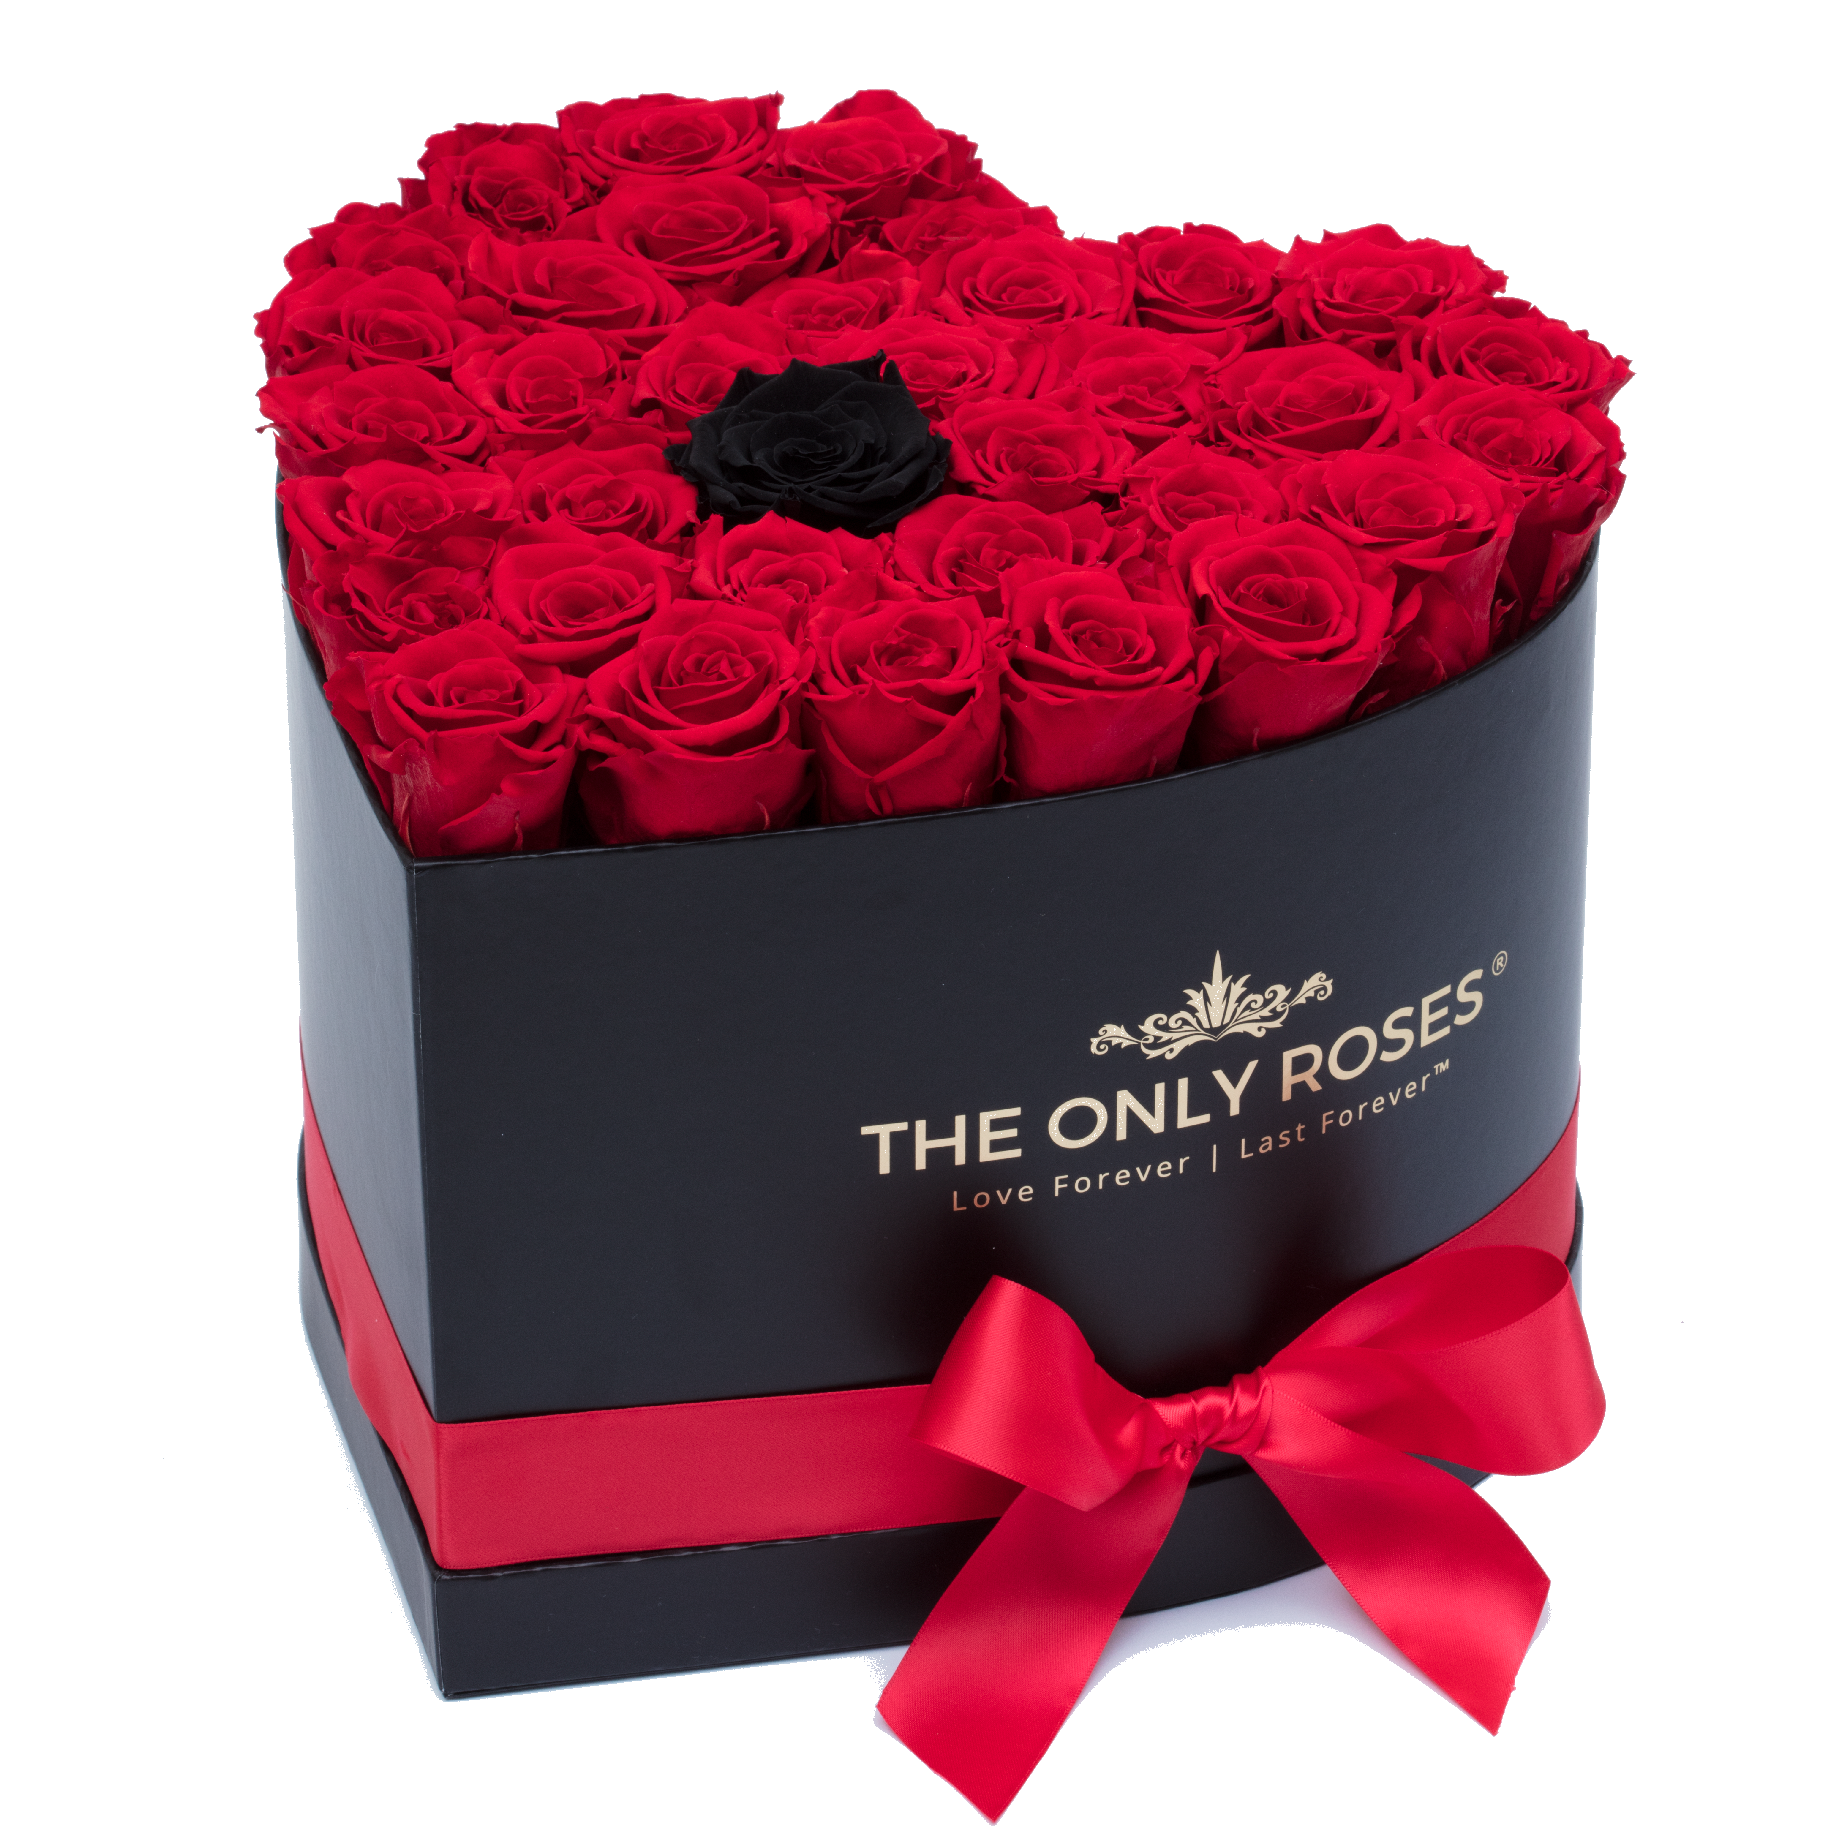 Red With One Black Preserved Roses Black Heart Rose Hat Box Preserved Roses Luxury Flowers Rose